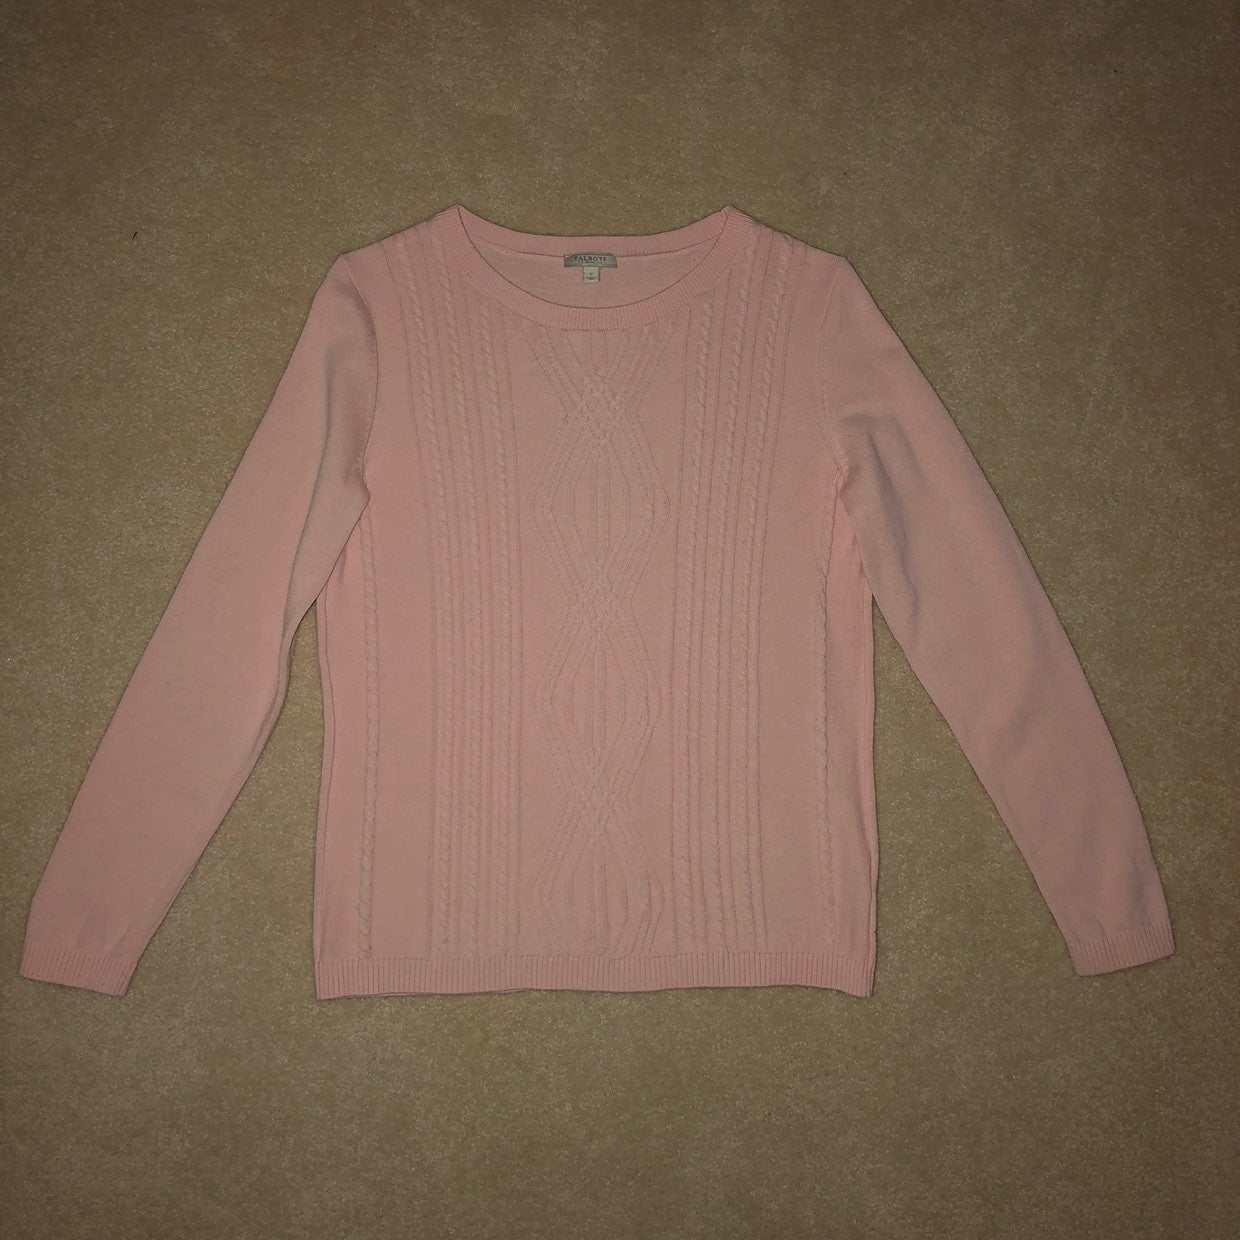 Talbots Ladies Long Sleeve Sweater Sz P